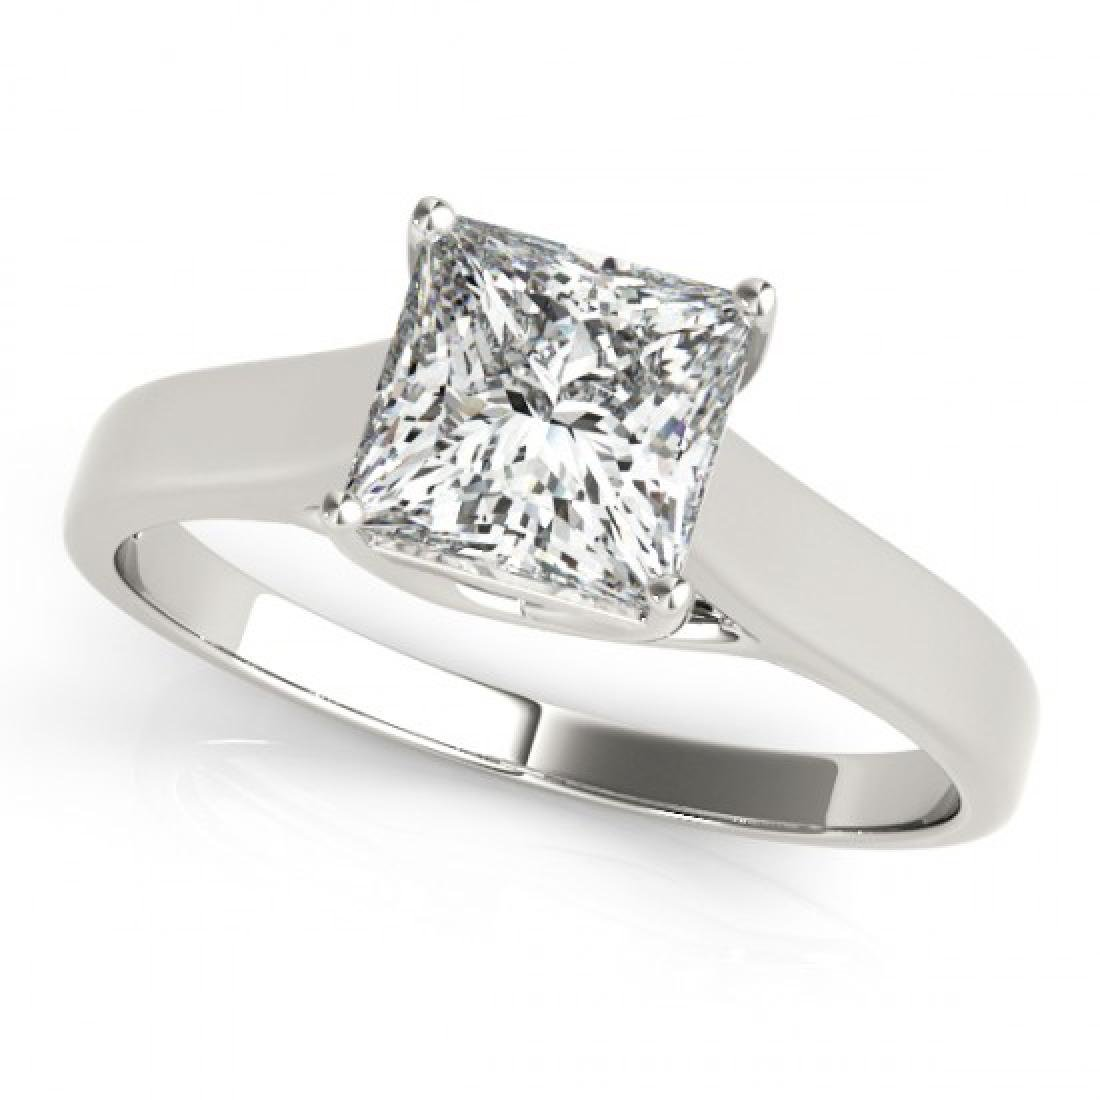 0.75 CTW Certified VS/SI Princess Diamond Ring 14K